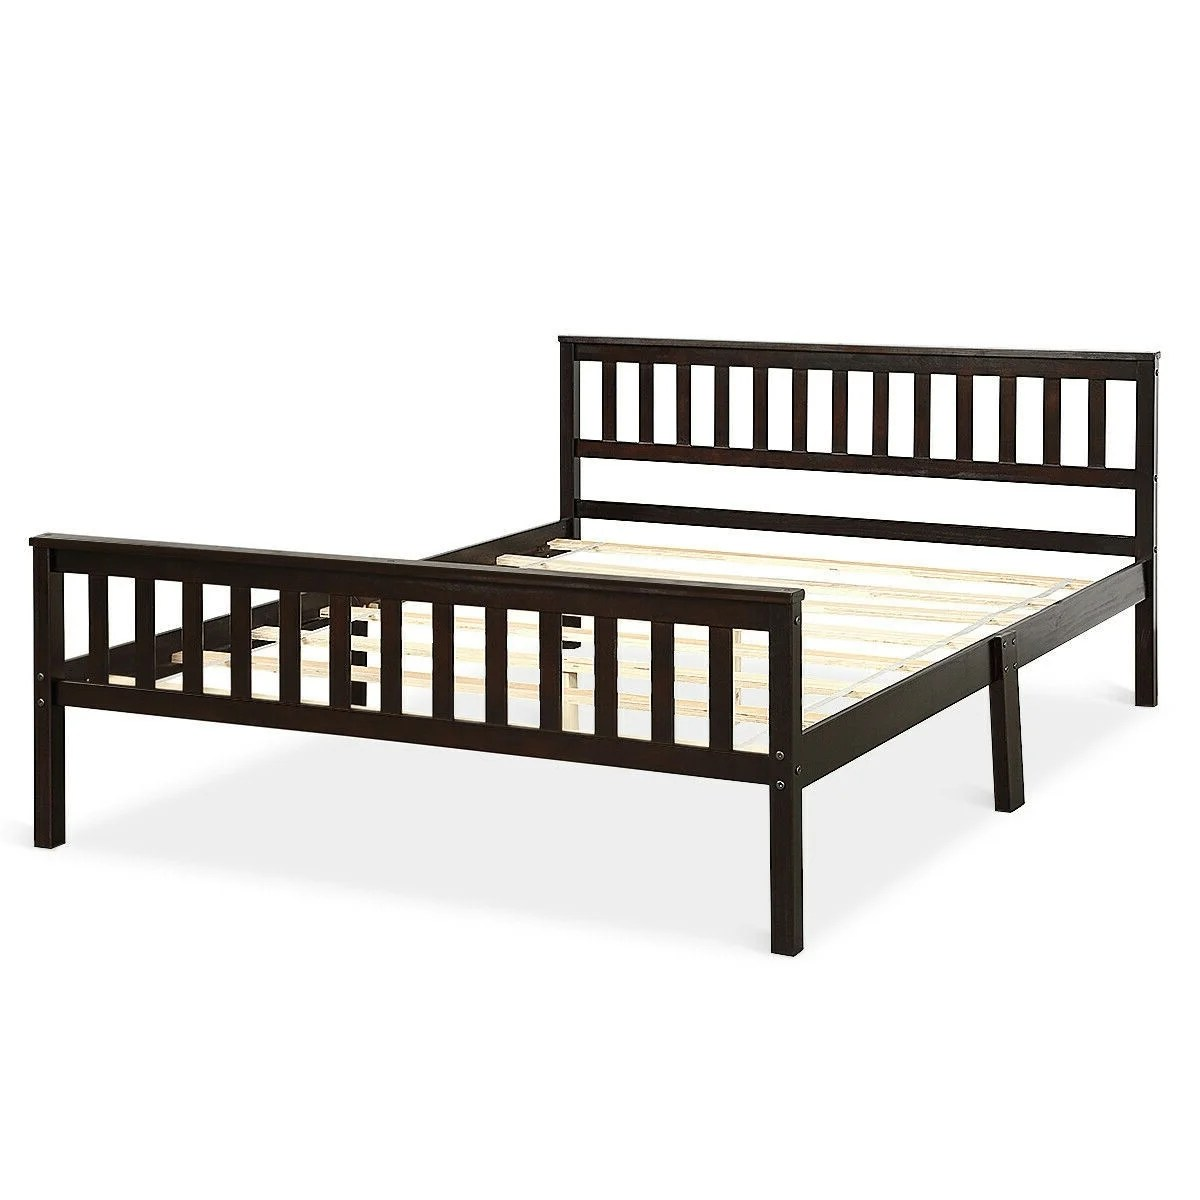 queen wood platform bed frame with headboard and footboard in espresso pictured